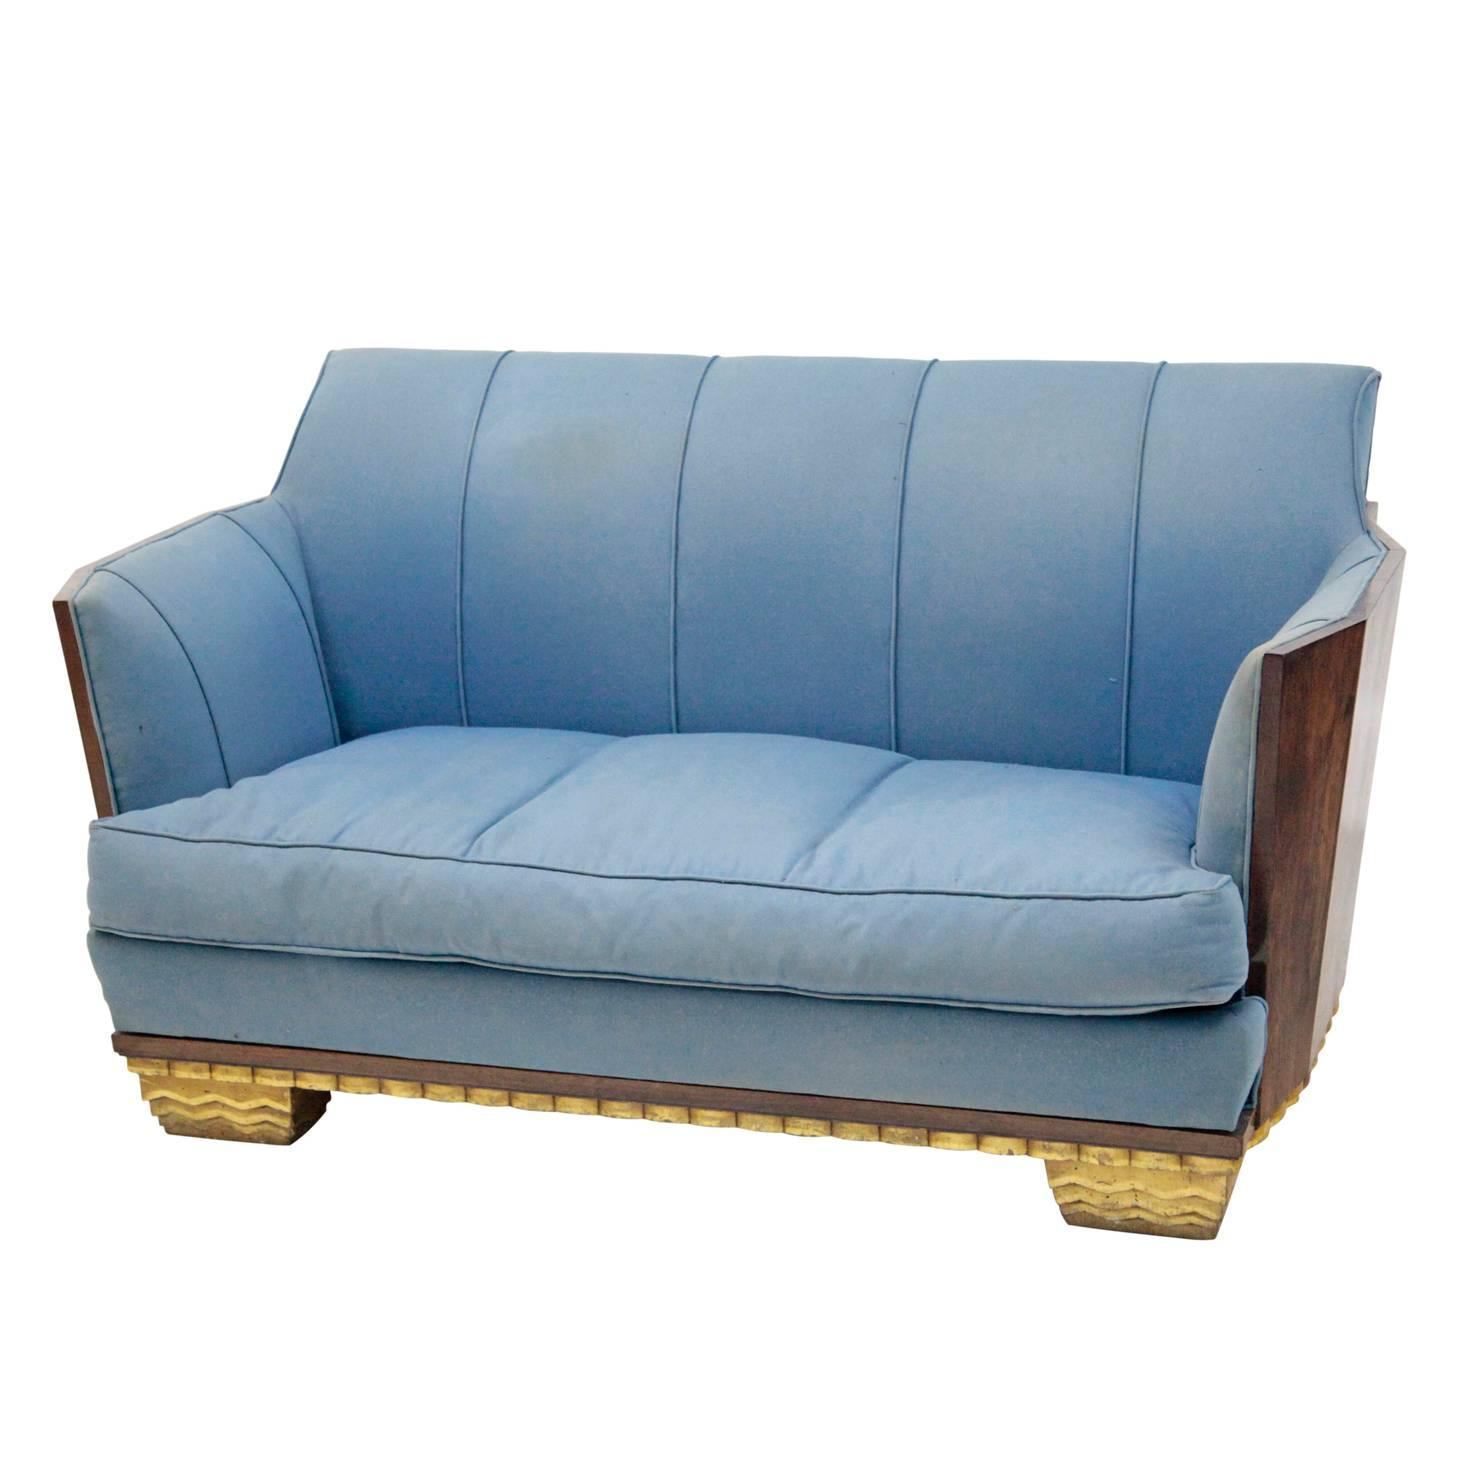 beautiful french art deco sofa at 1stdibs. Black Bedroom Furniture Sets. Home Design Ideas